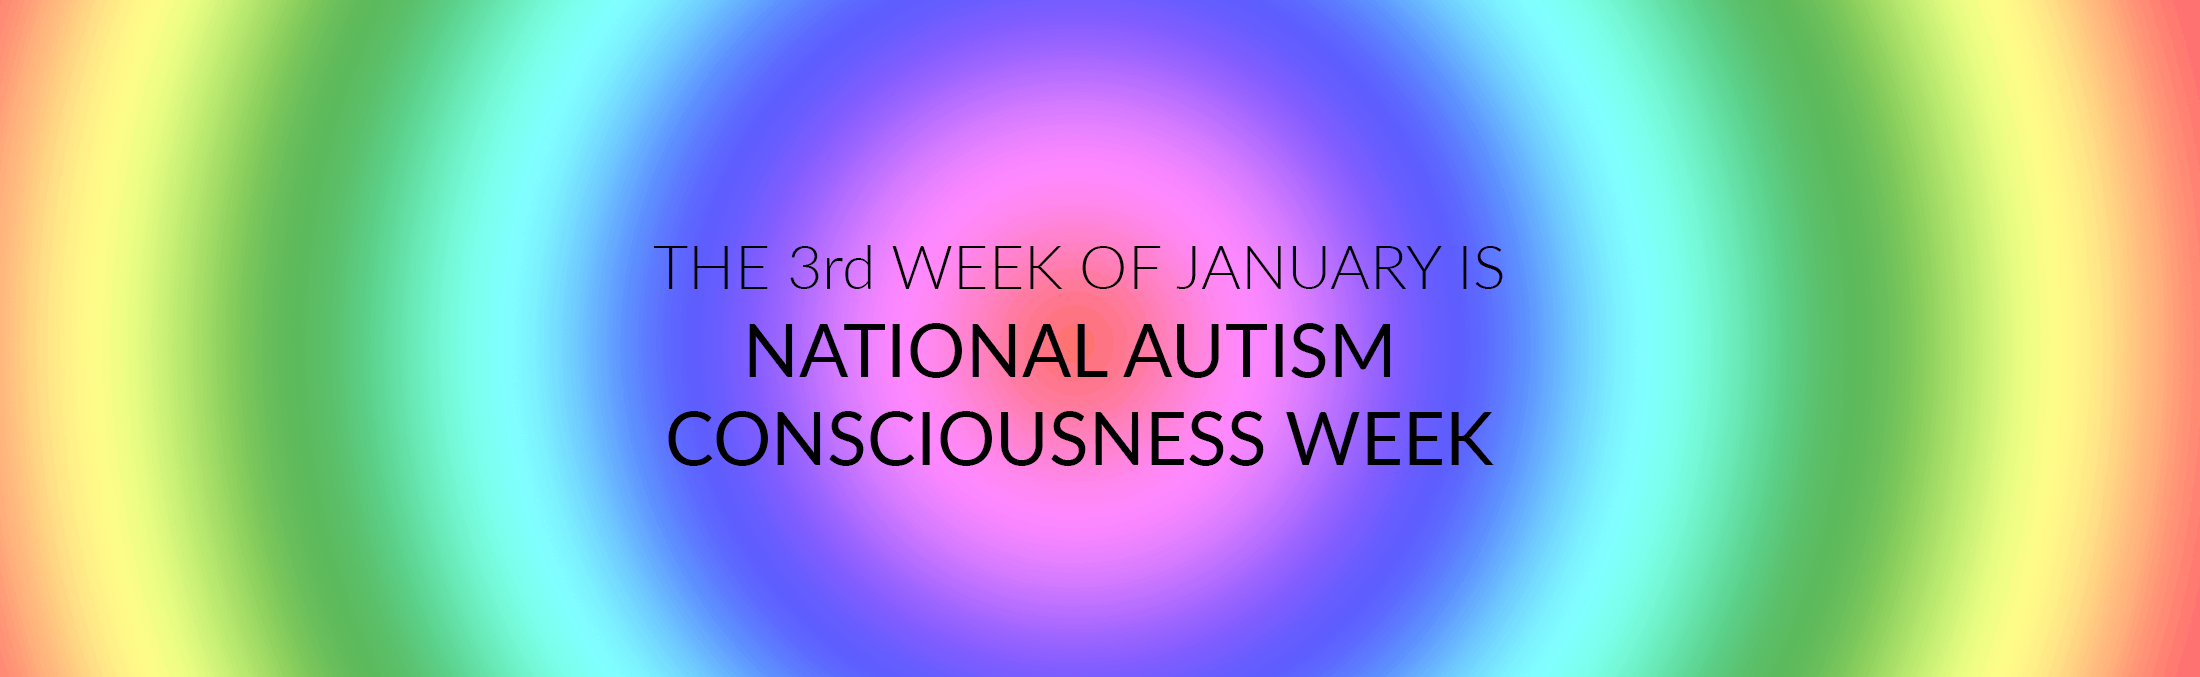 national autism consciousness week philippines banner